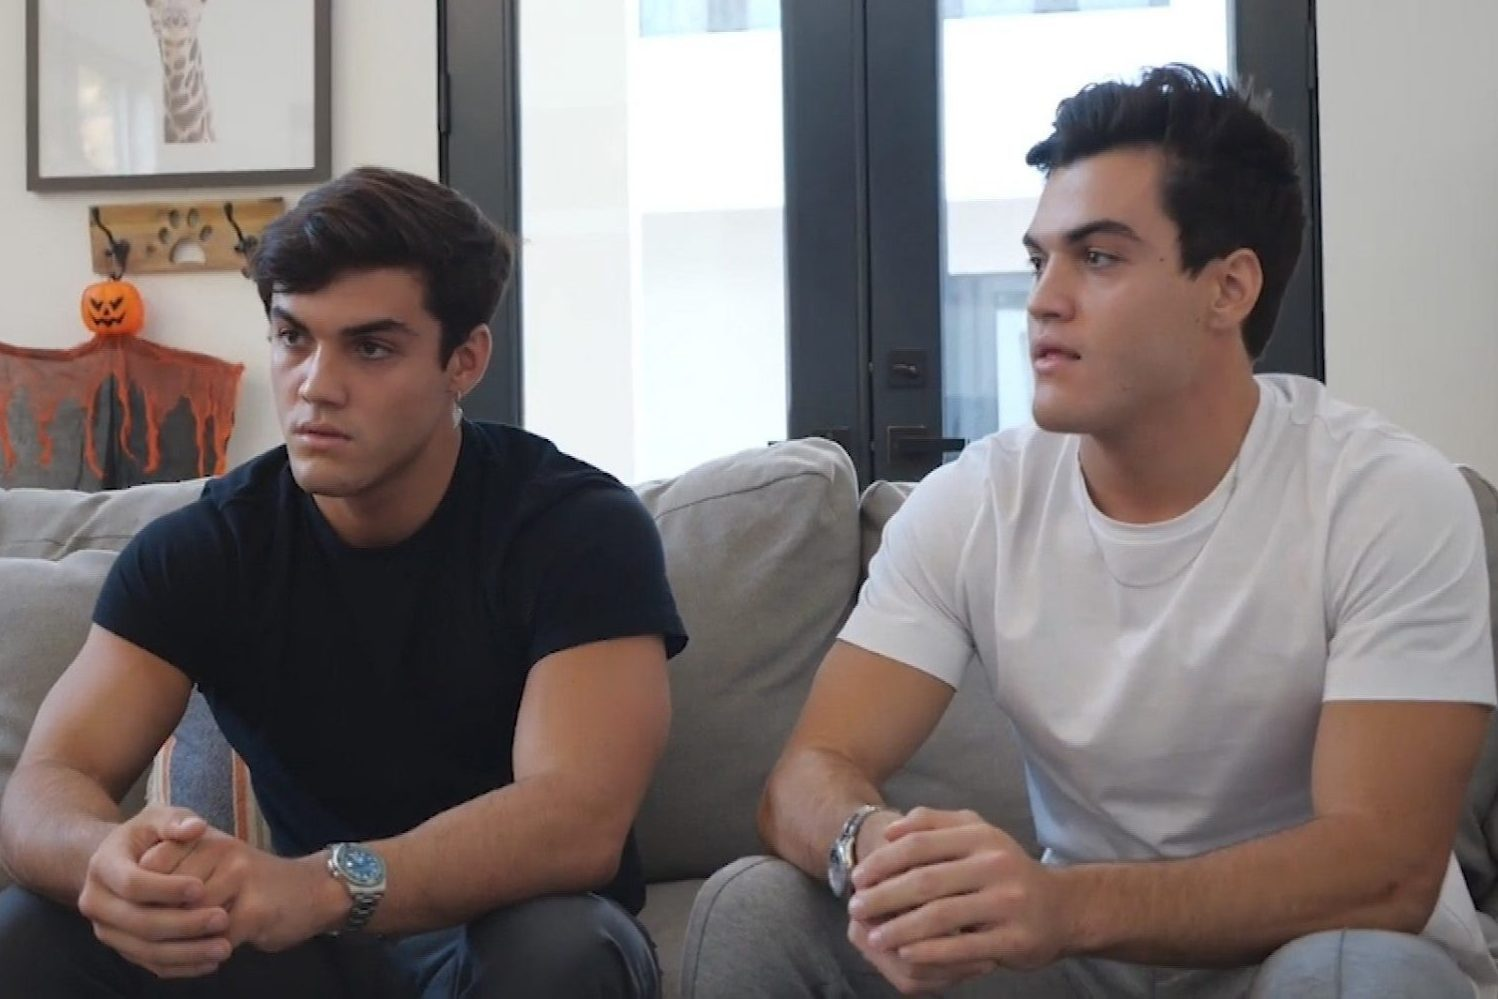 Image of the Dolan twins sitting on a couch